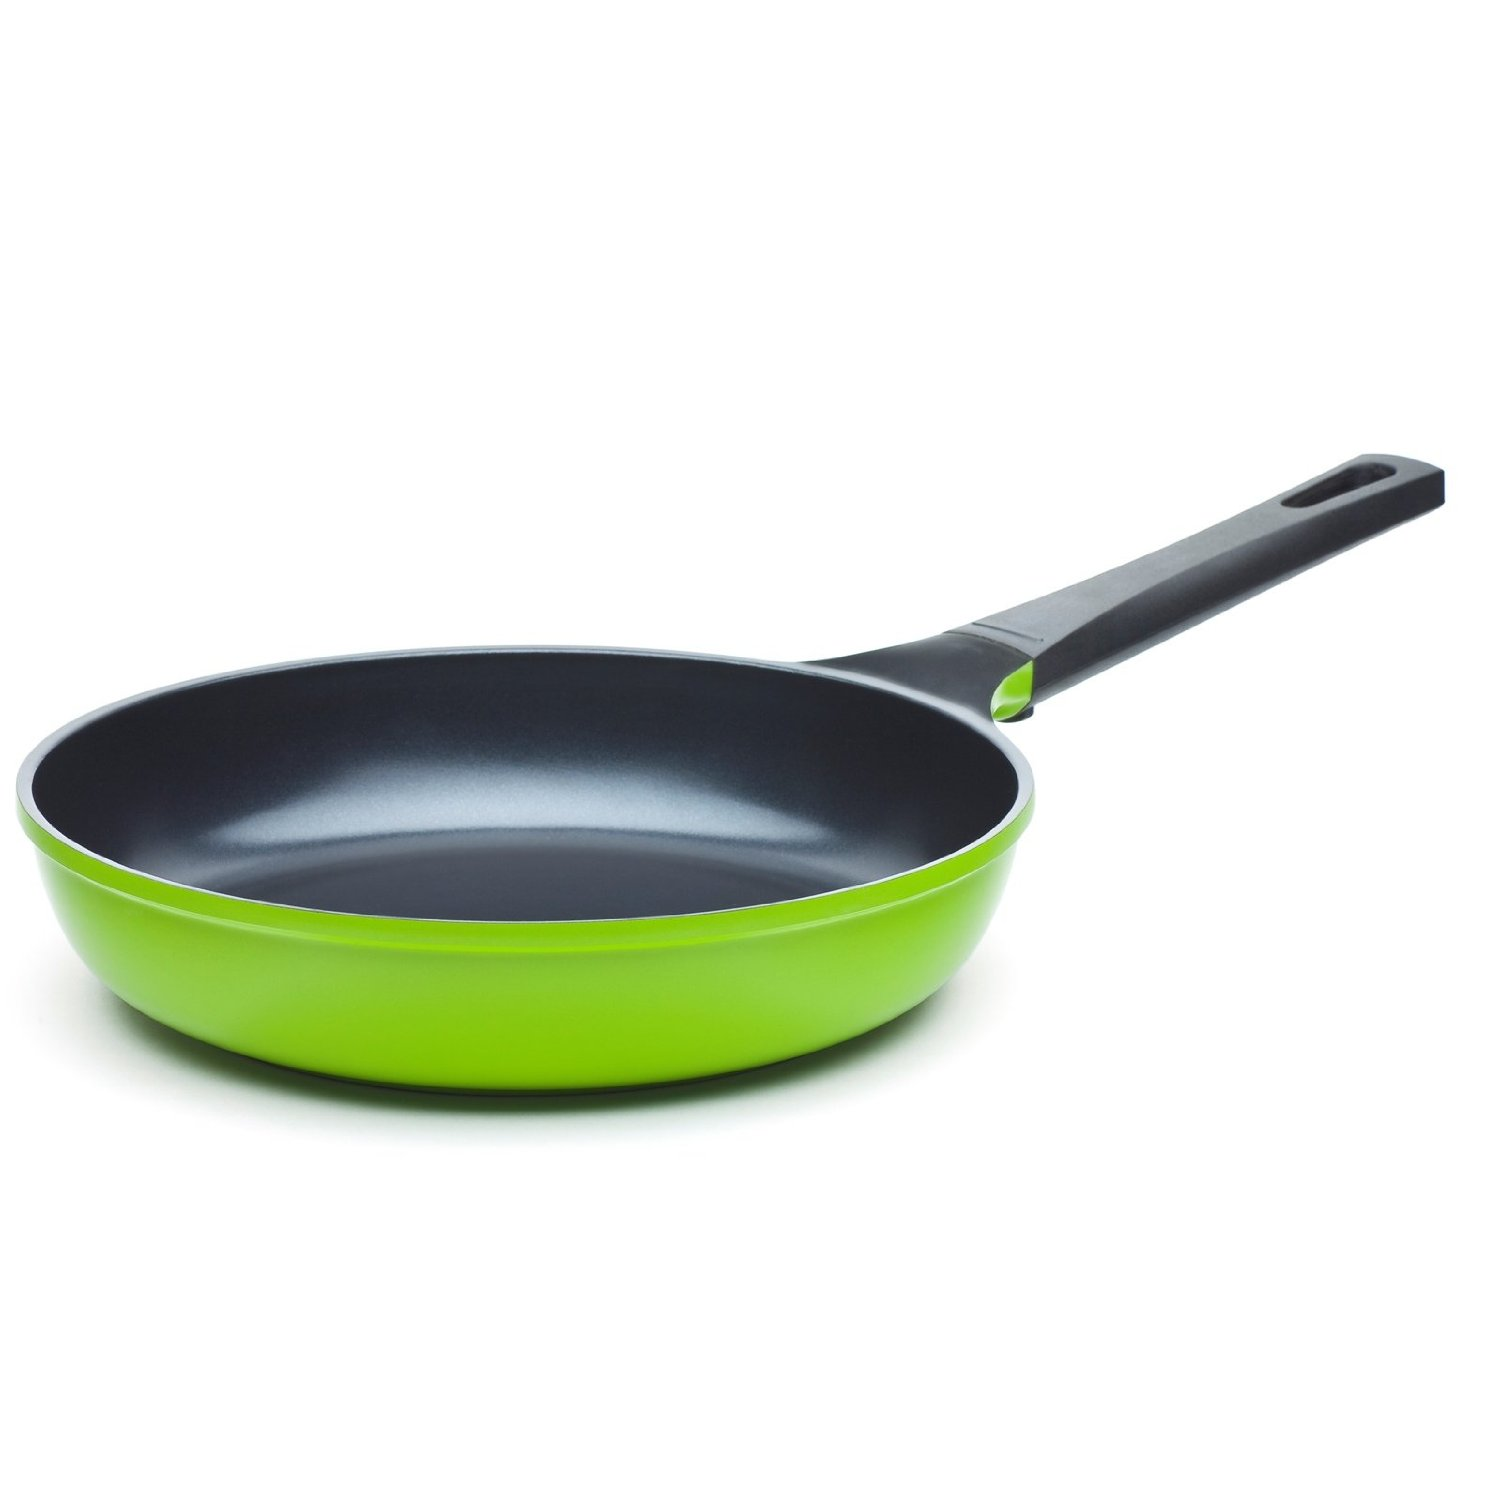 Good Frying Pans Mommyknowz Ozeri Green Earth Frying Pan Review